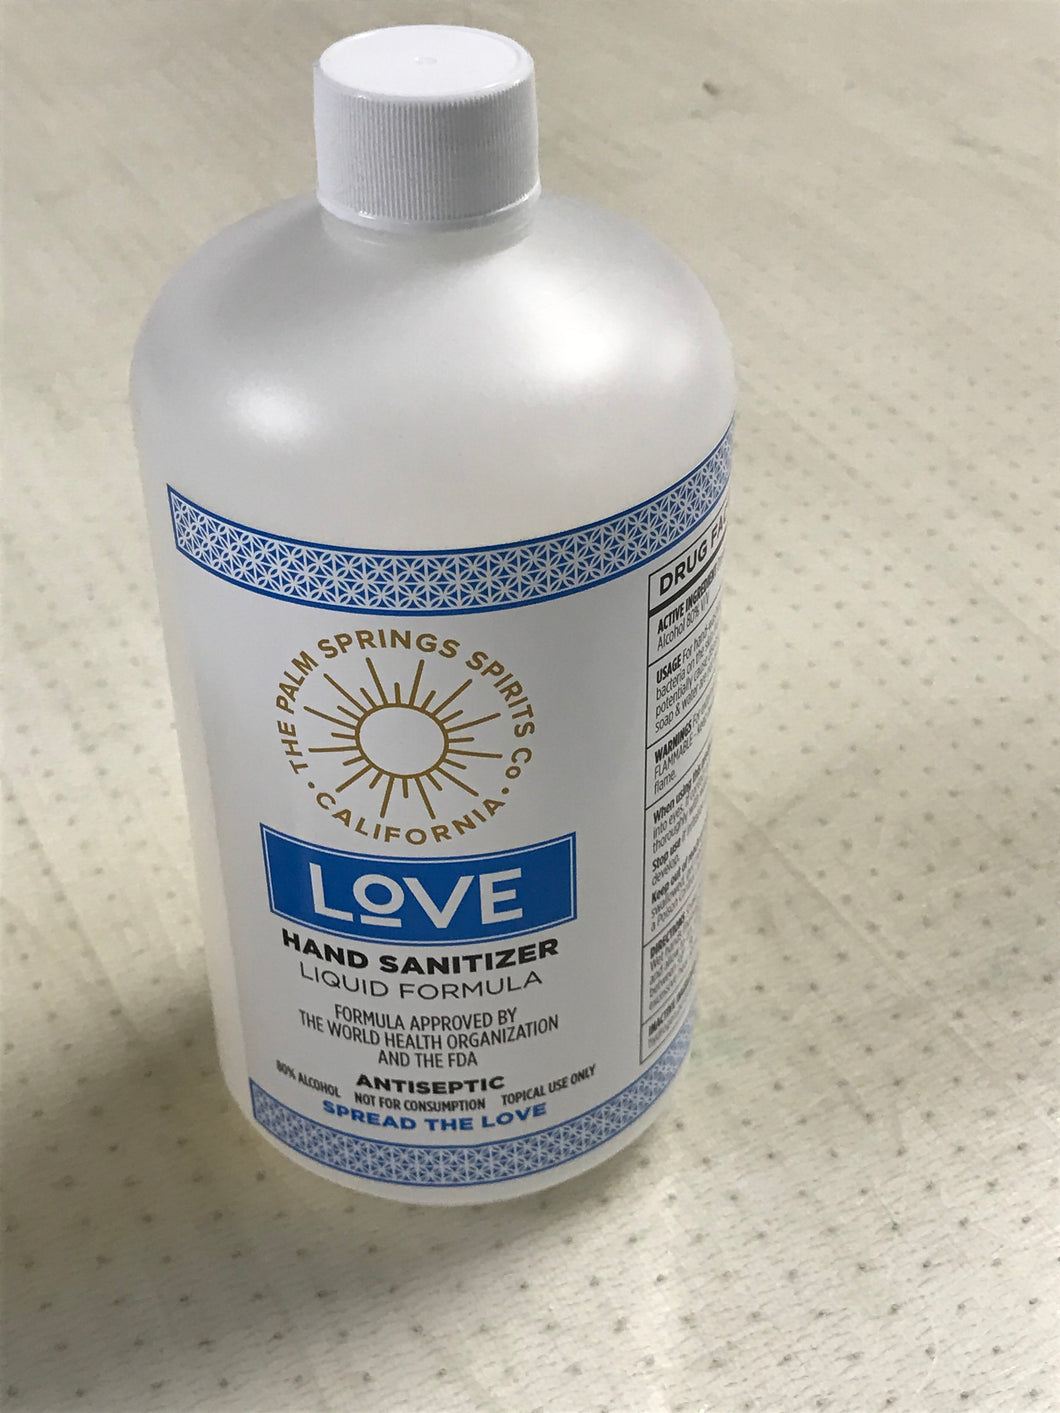 Hand Sanitizer (32 ounce size)